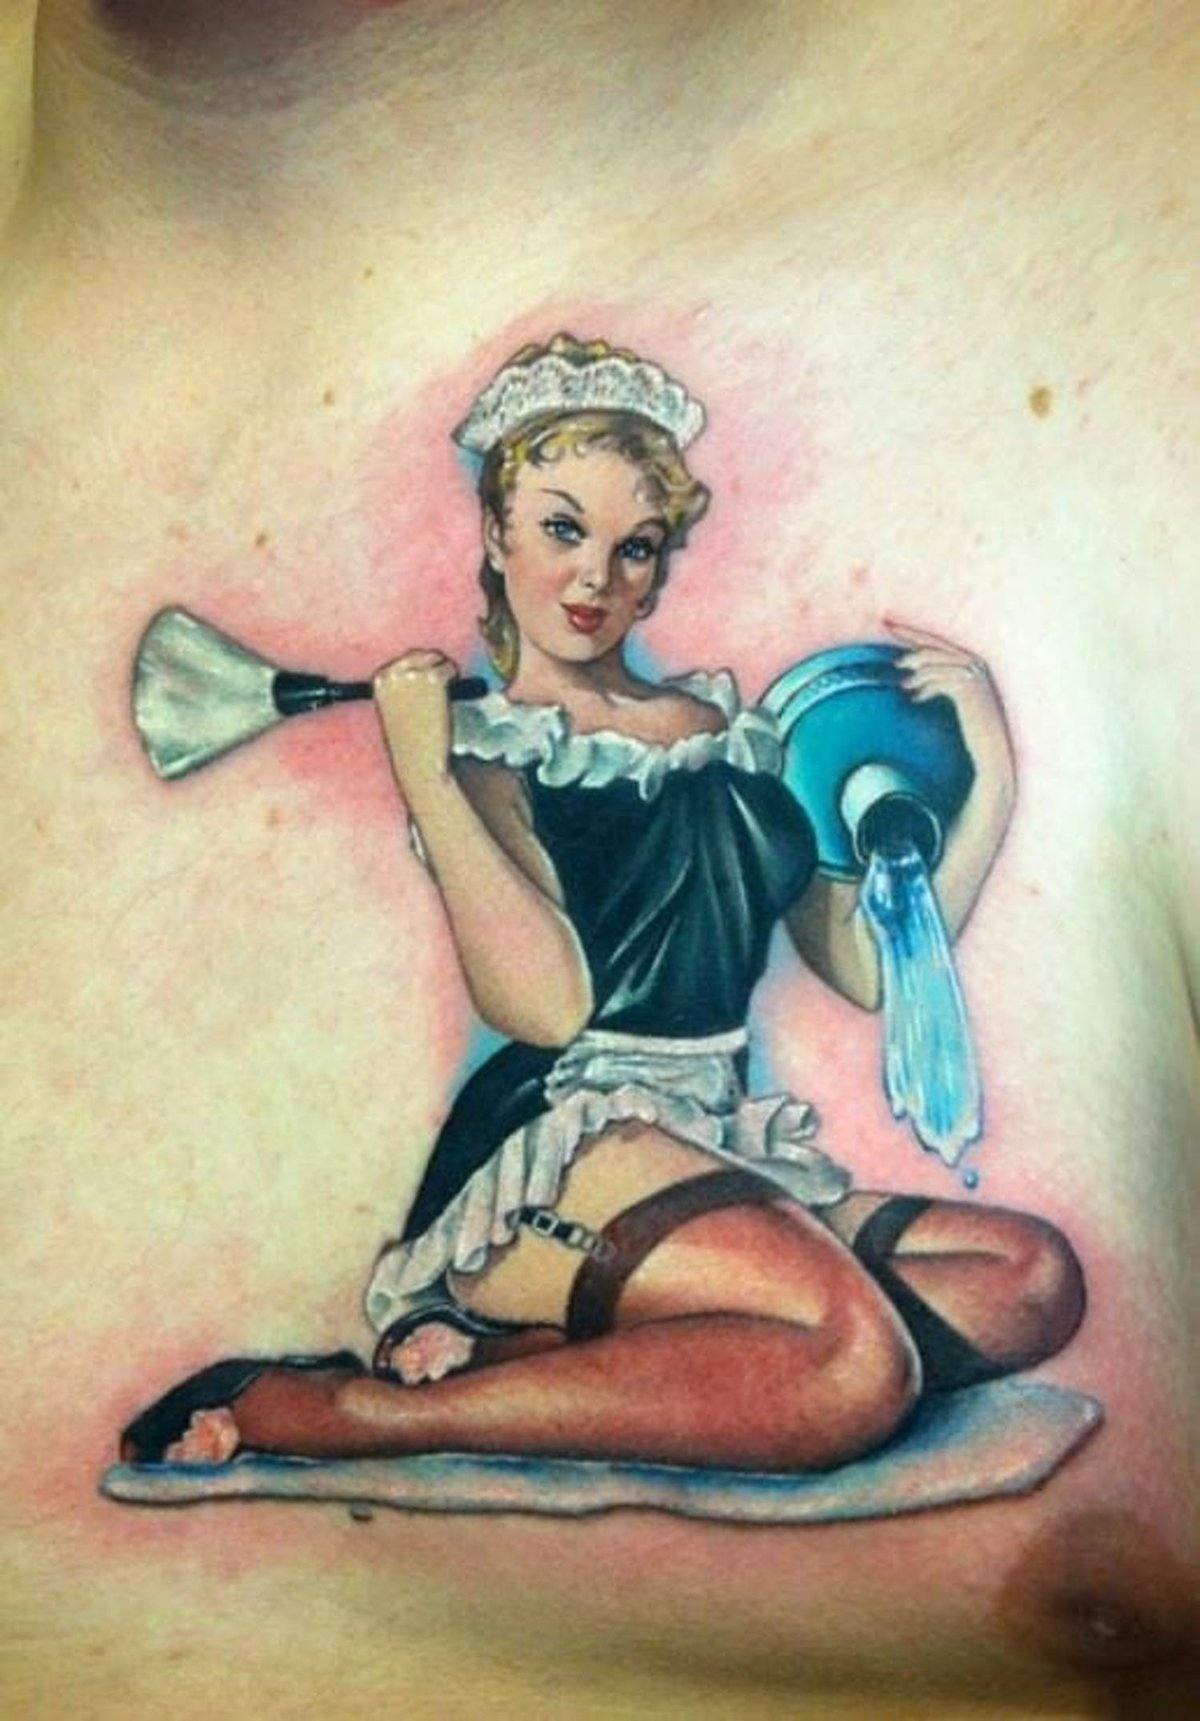 naked-tattoo-pin-up-girls-fat-girl-fucked-by-pig